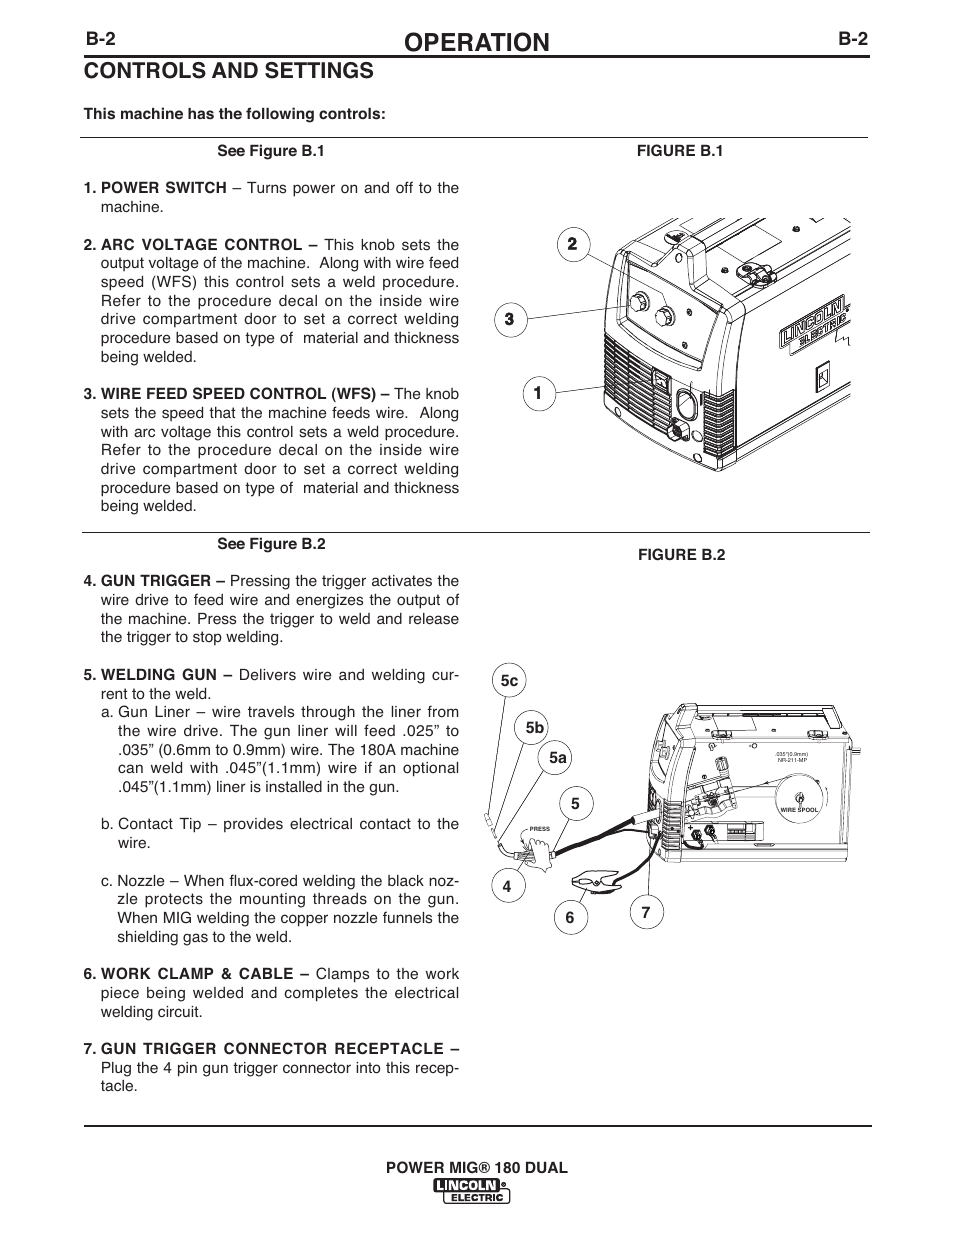 Operation Controls And Settings Lincoln Electric Imt10089 Power Mig Welding Equipment Diagram 180 Dual User Manual Page 10 92